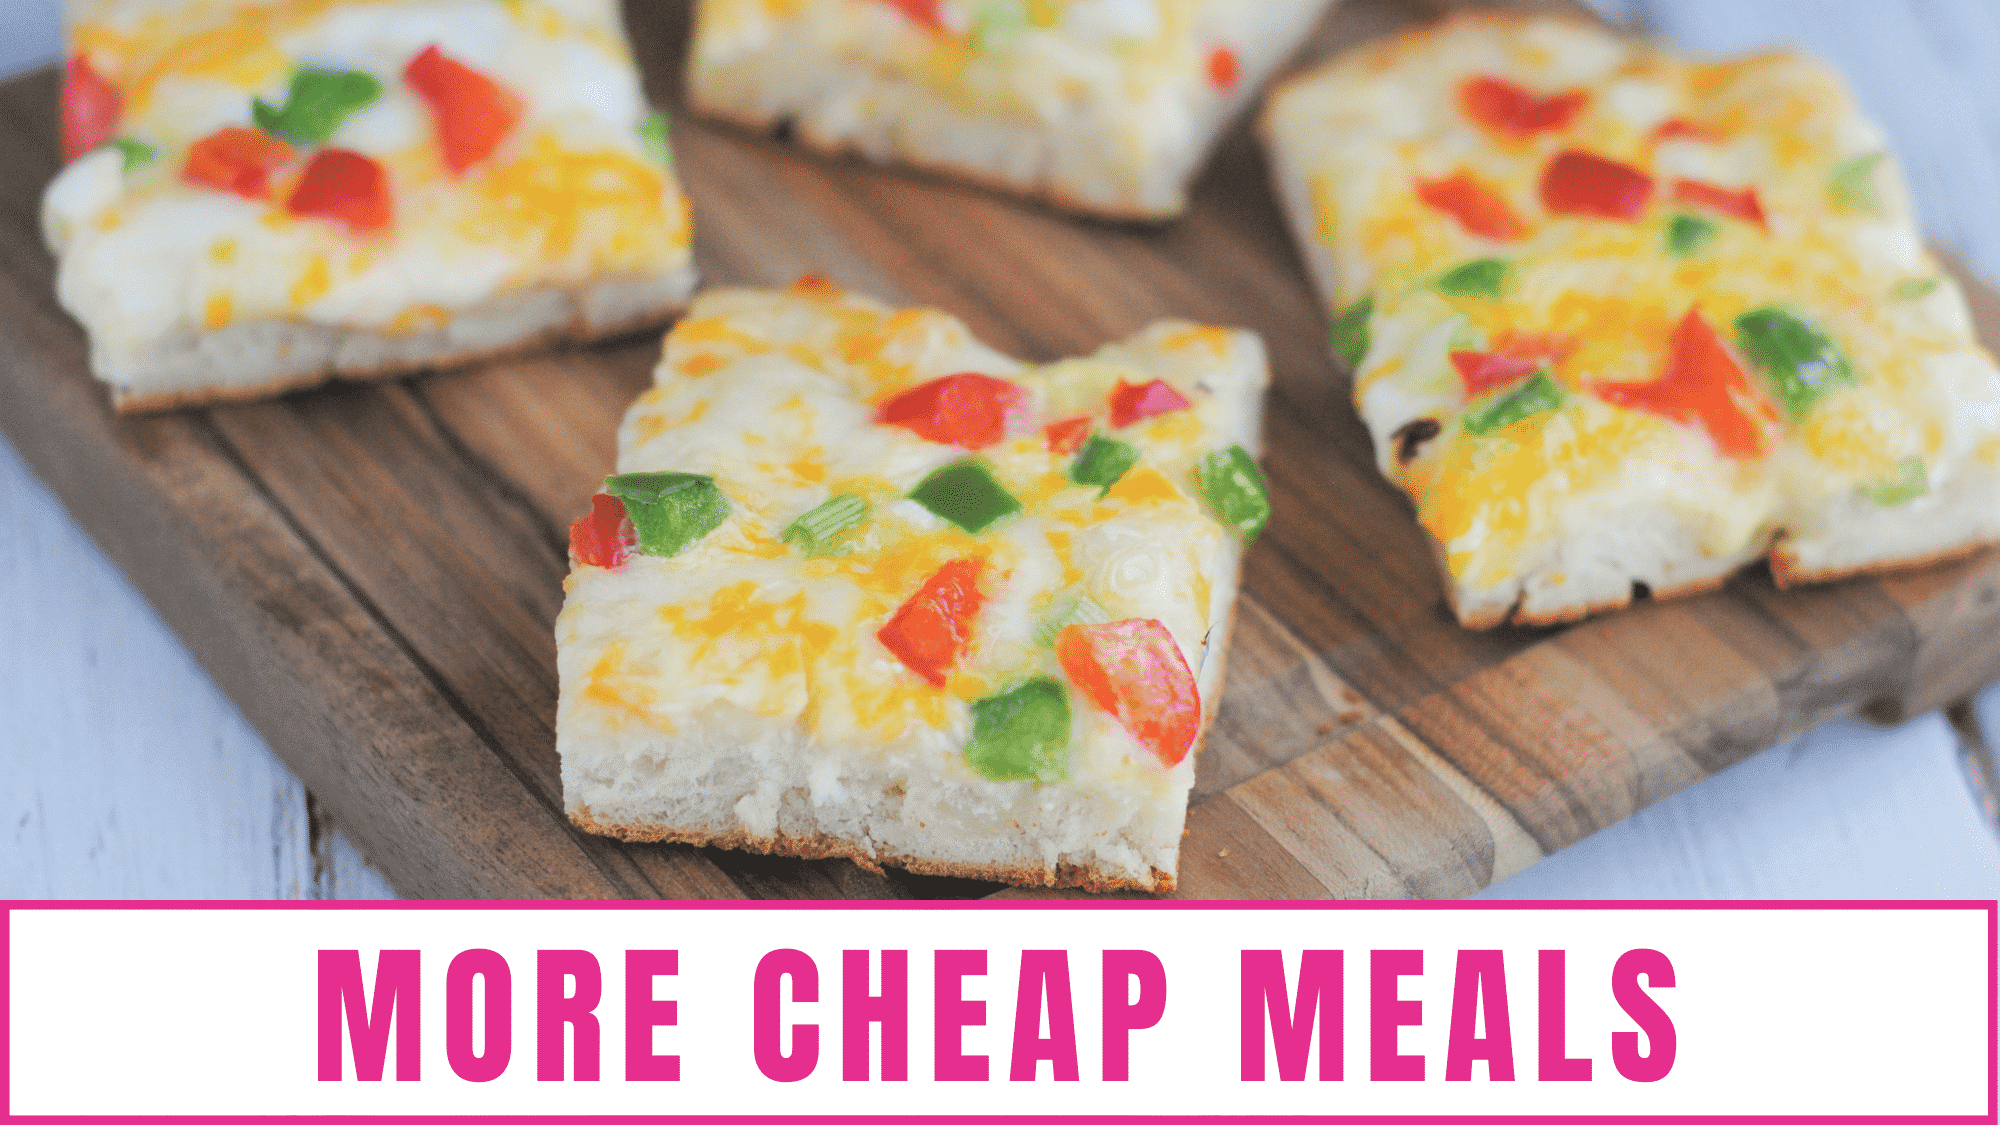 Cheap meals for large families recipes don't have to be bland and boring, as these 39 recipes prove!